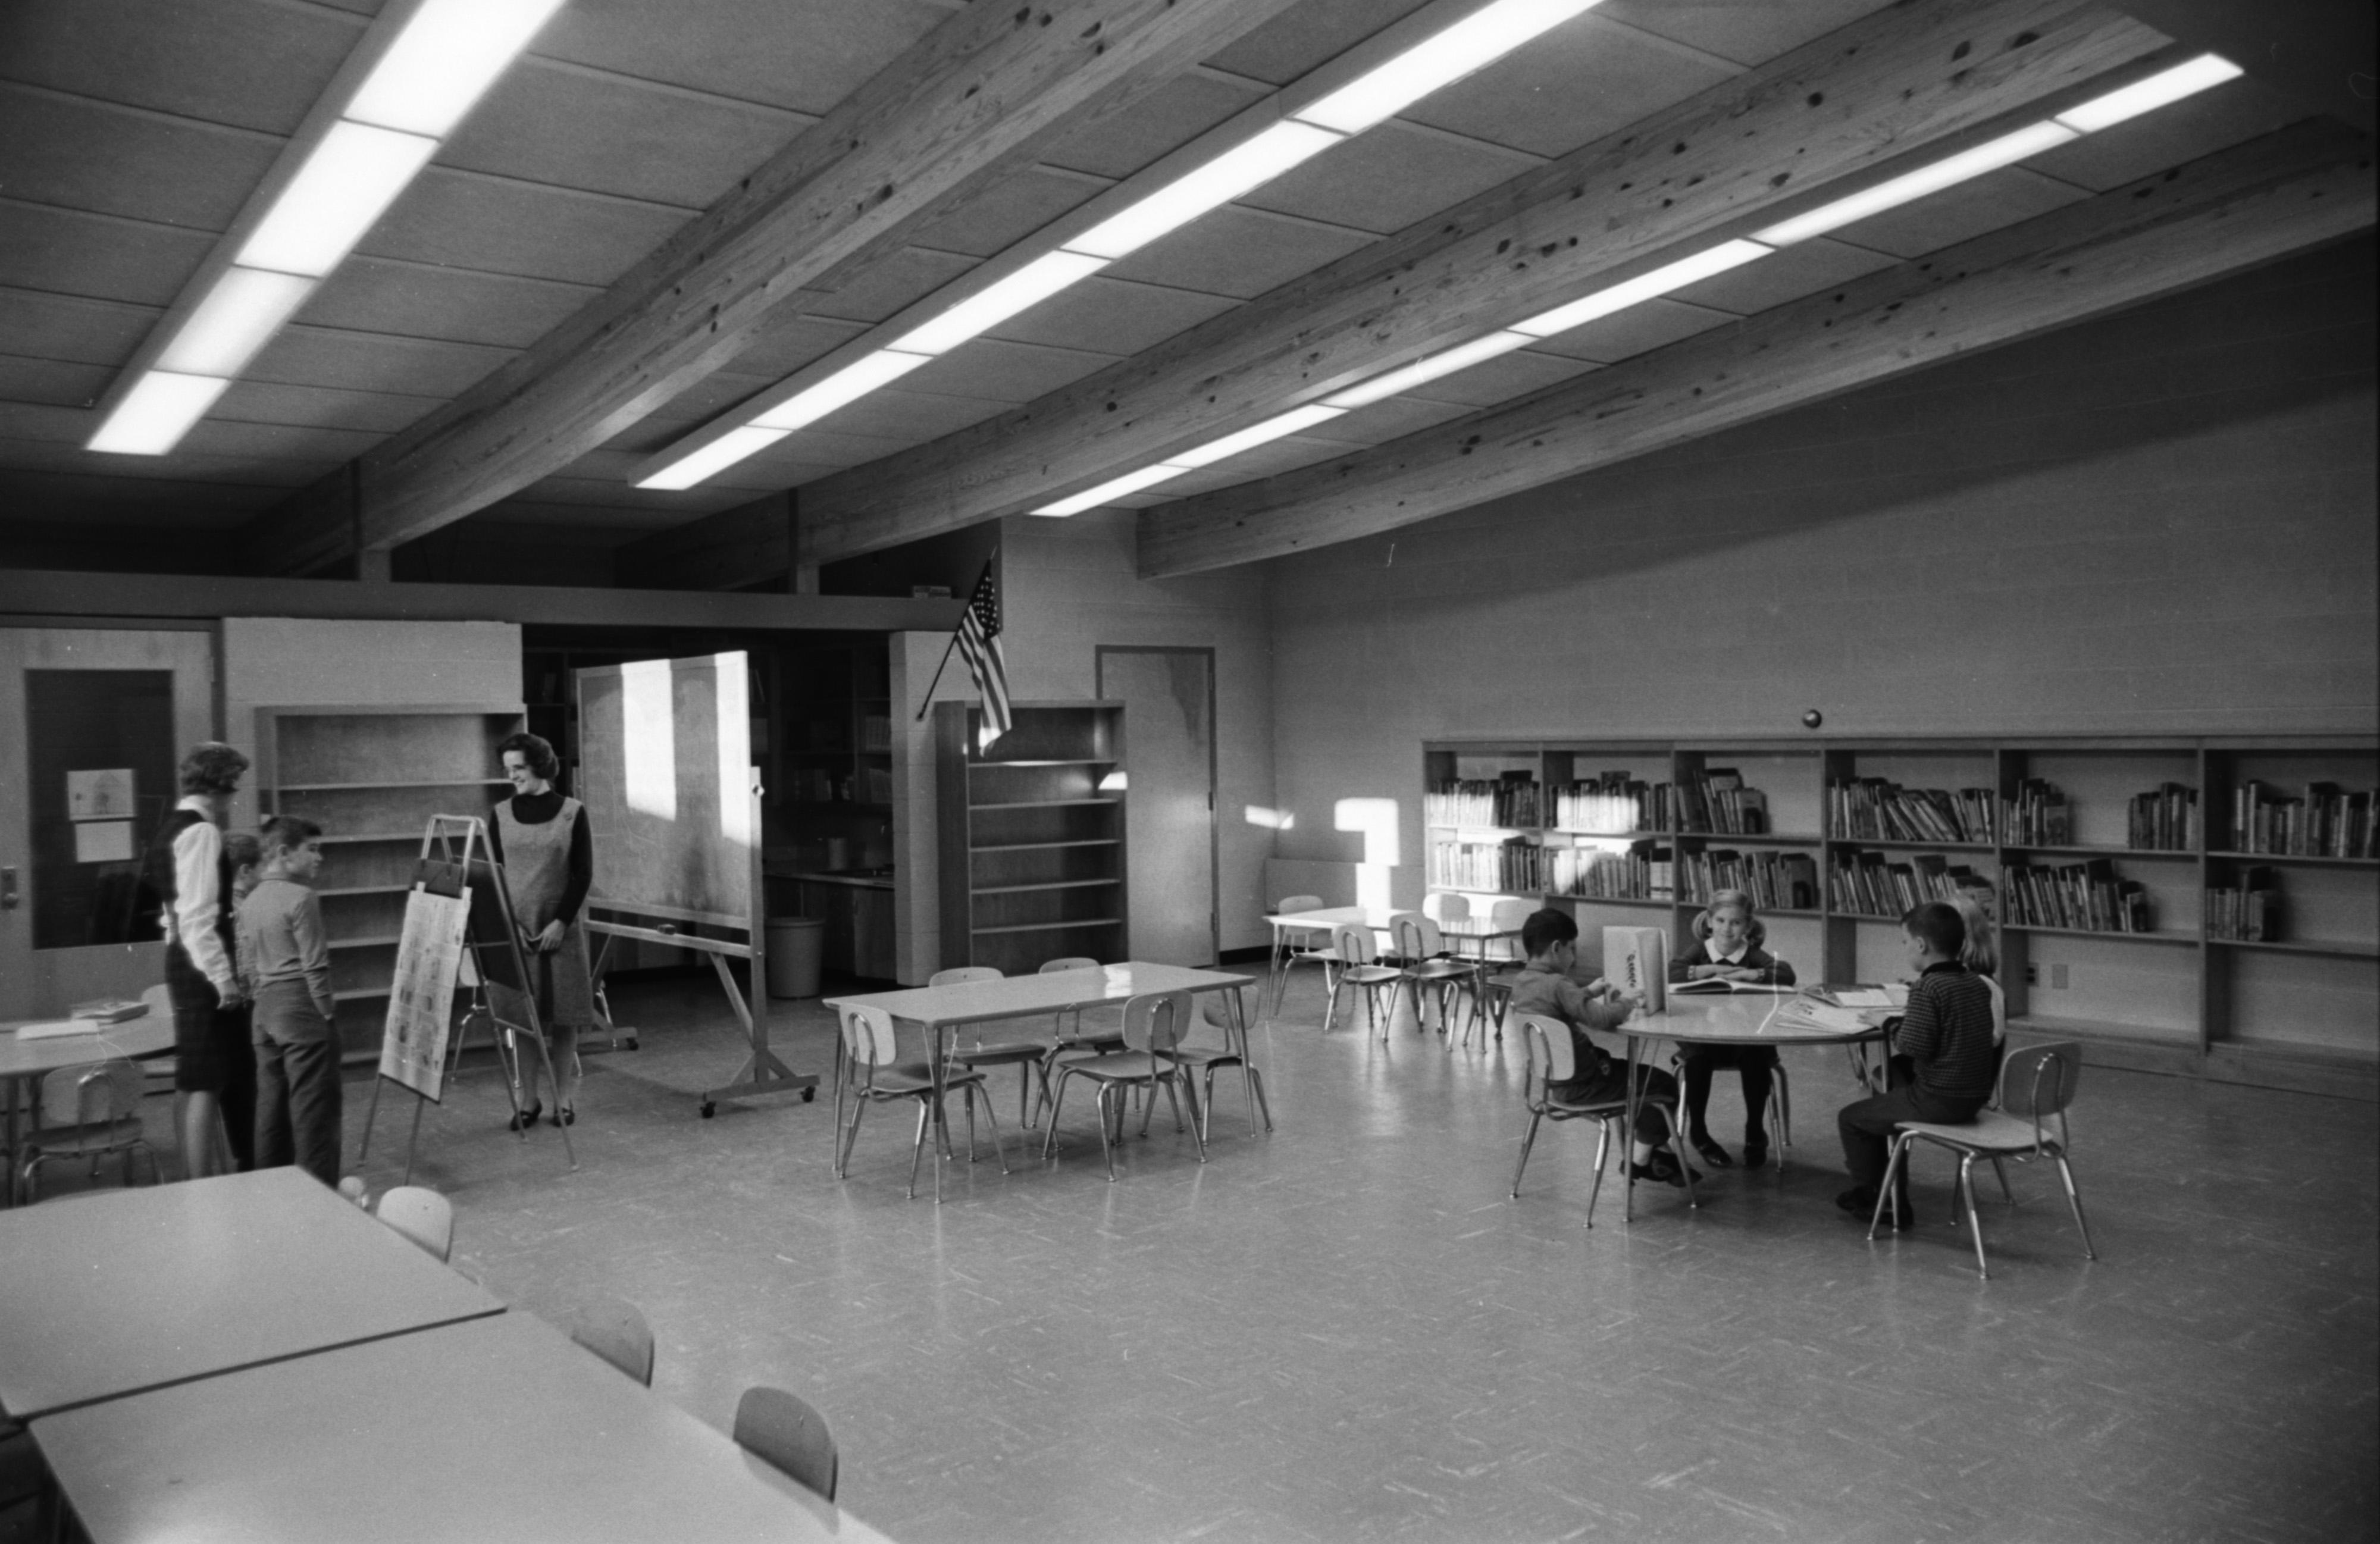 Bader Elementary School Library, December 1965 image